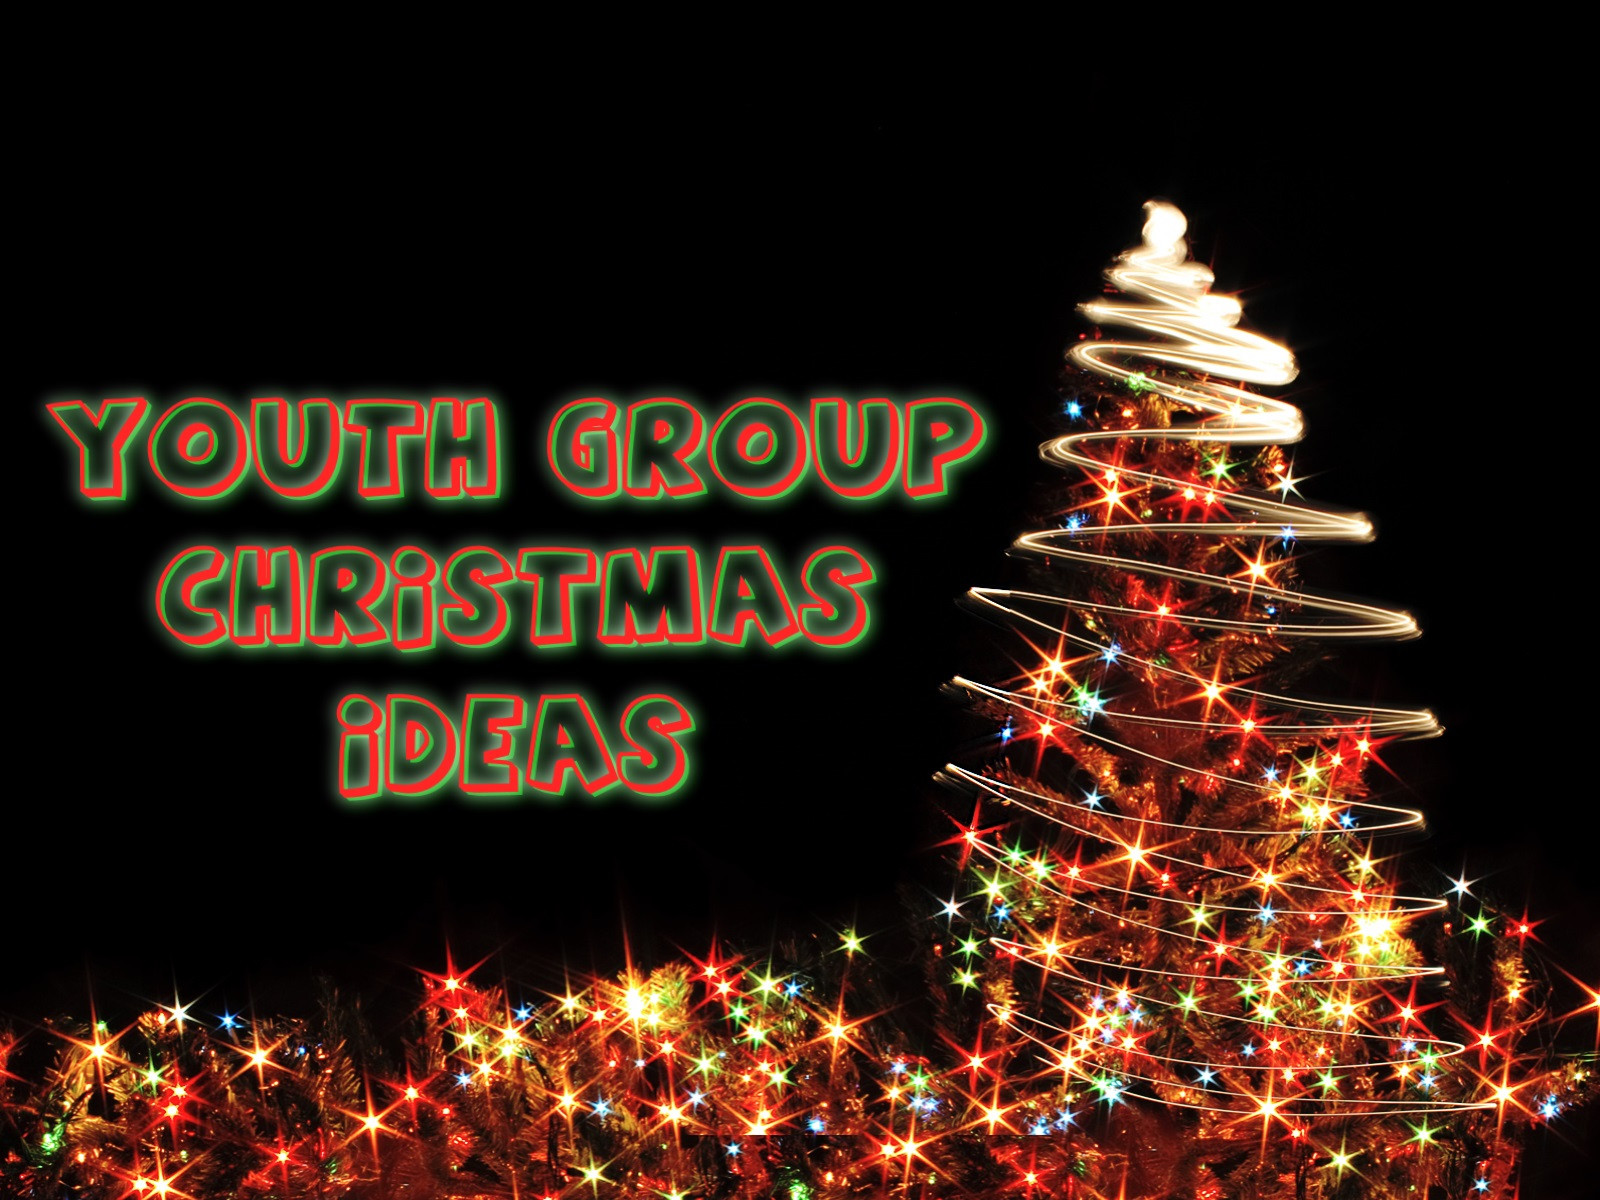 Youth Christmas Party Ideas  Youth Group Christmas Ideas ProjectYM